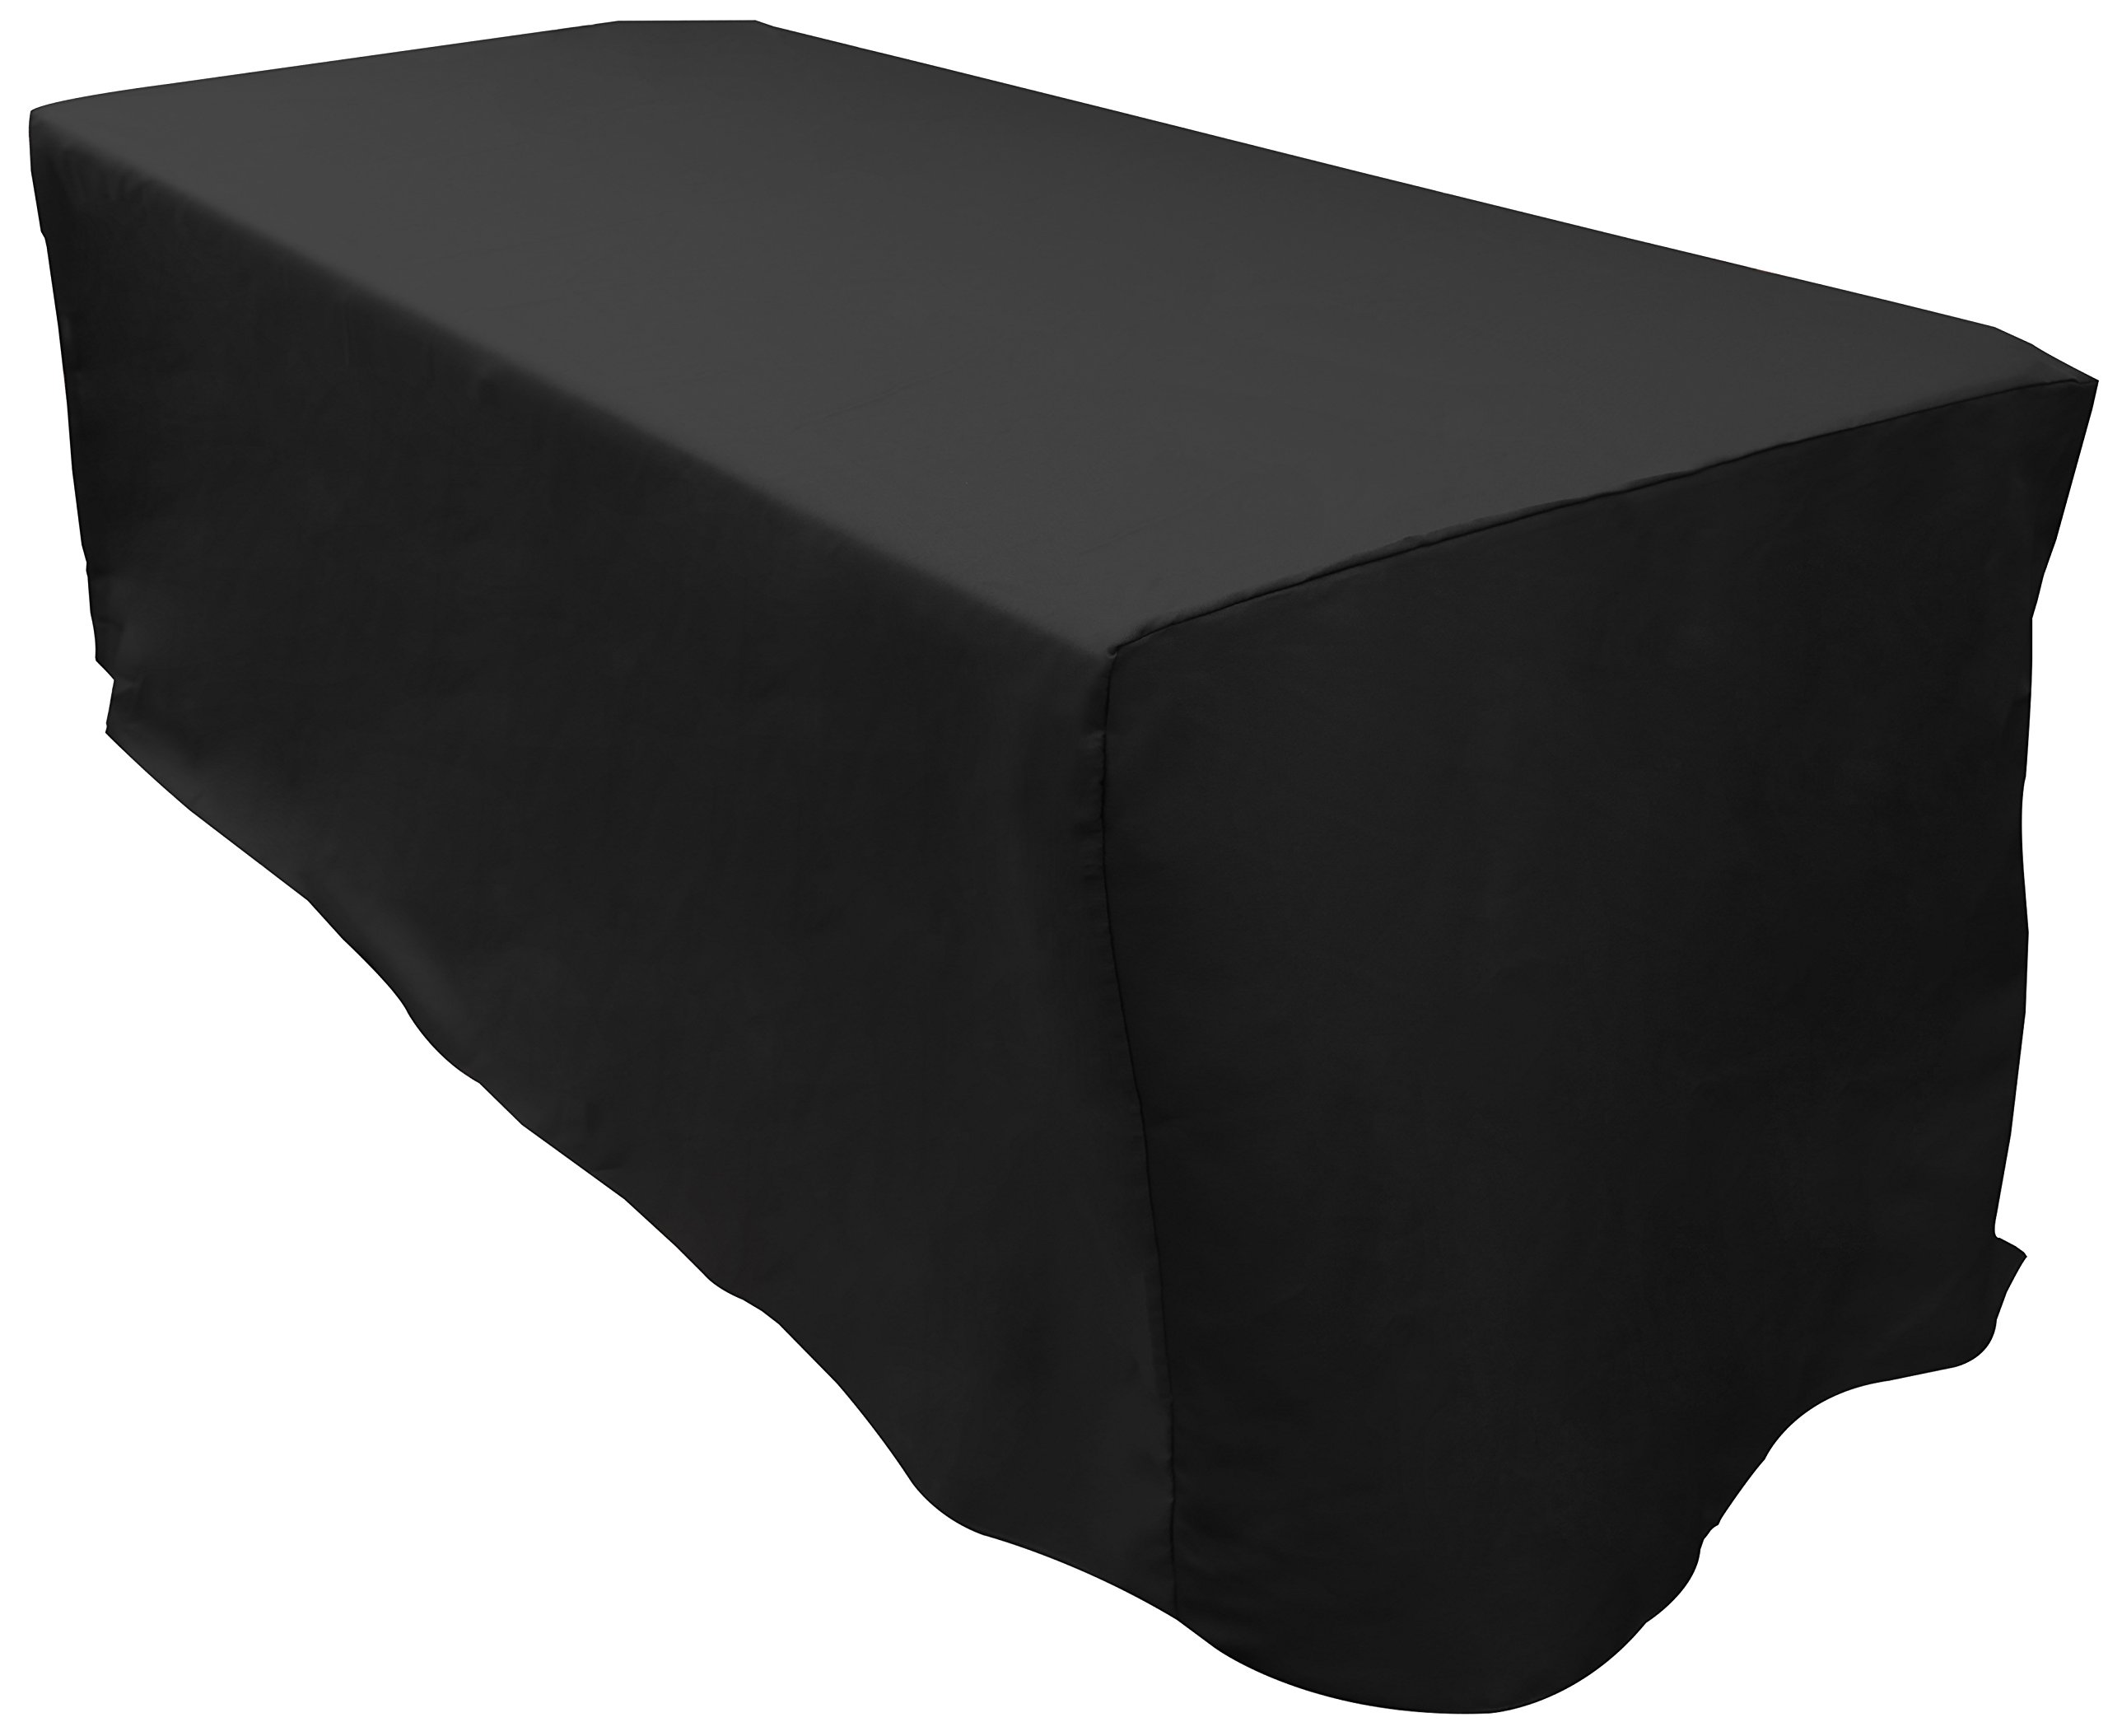 Zoyer 6 ft. Fitted Tablecloth - Rectangular Table Cover Fitted Black Tablecloth 30 x 72 Inch 6 Feet - Black